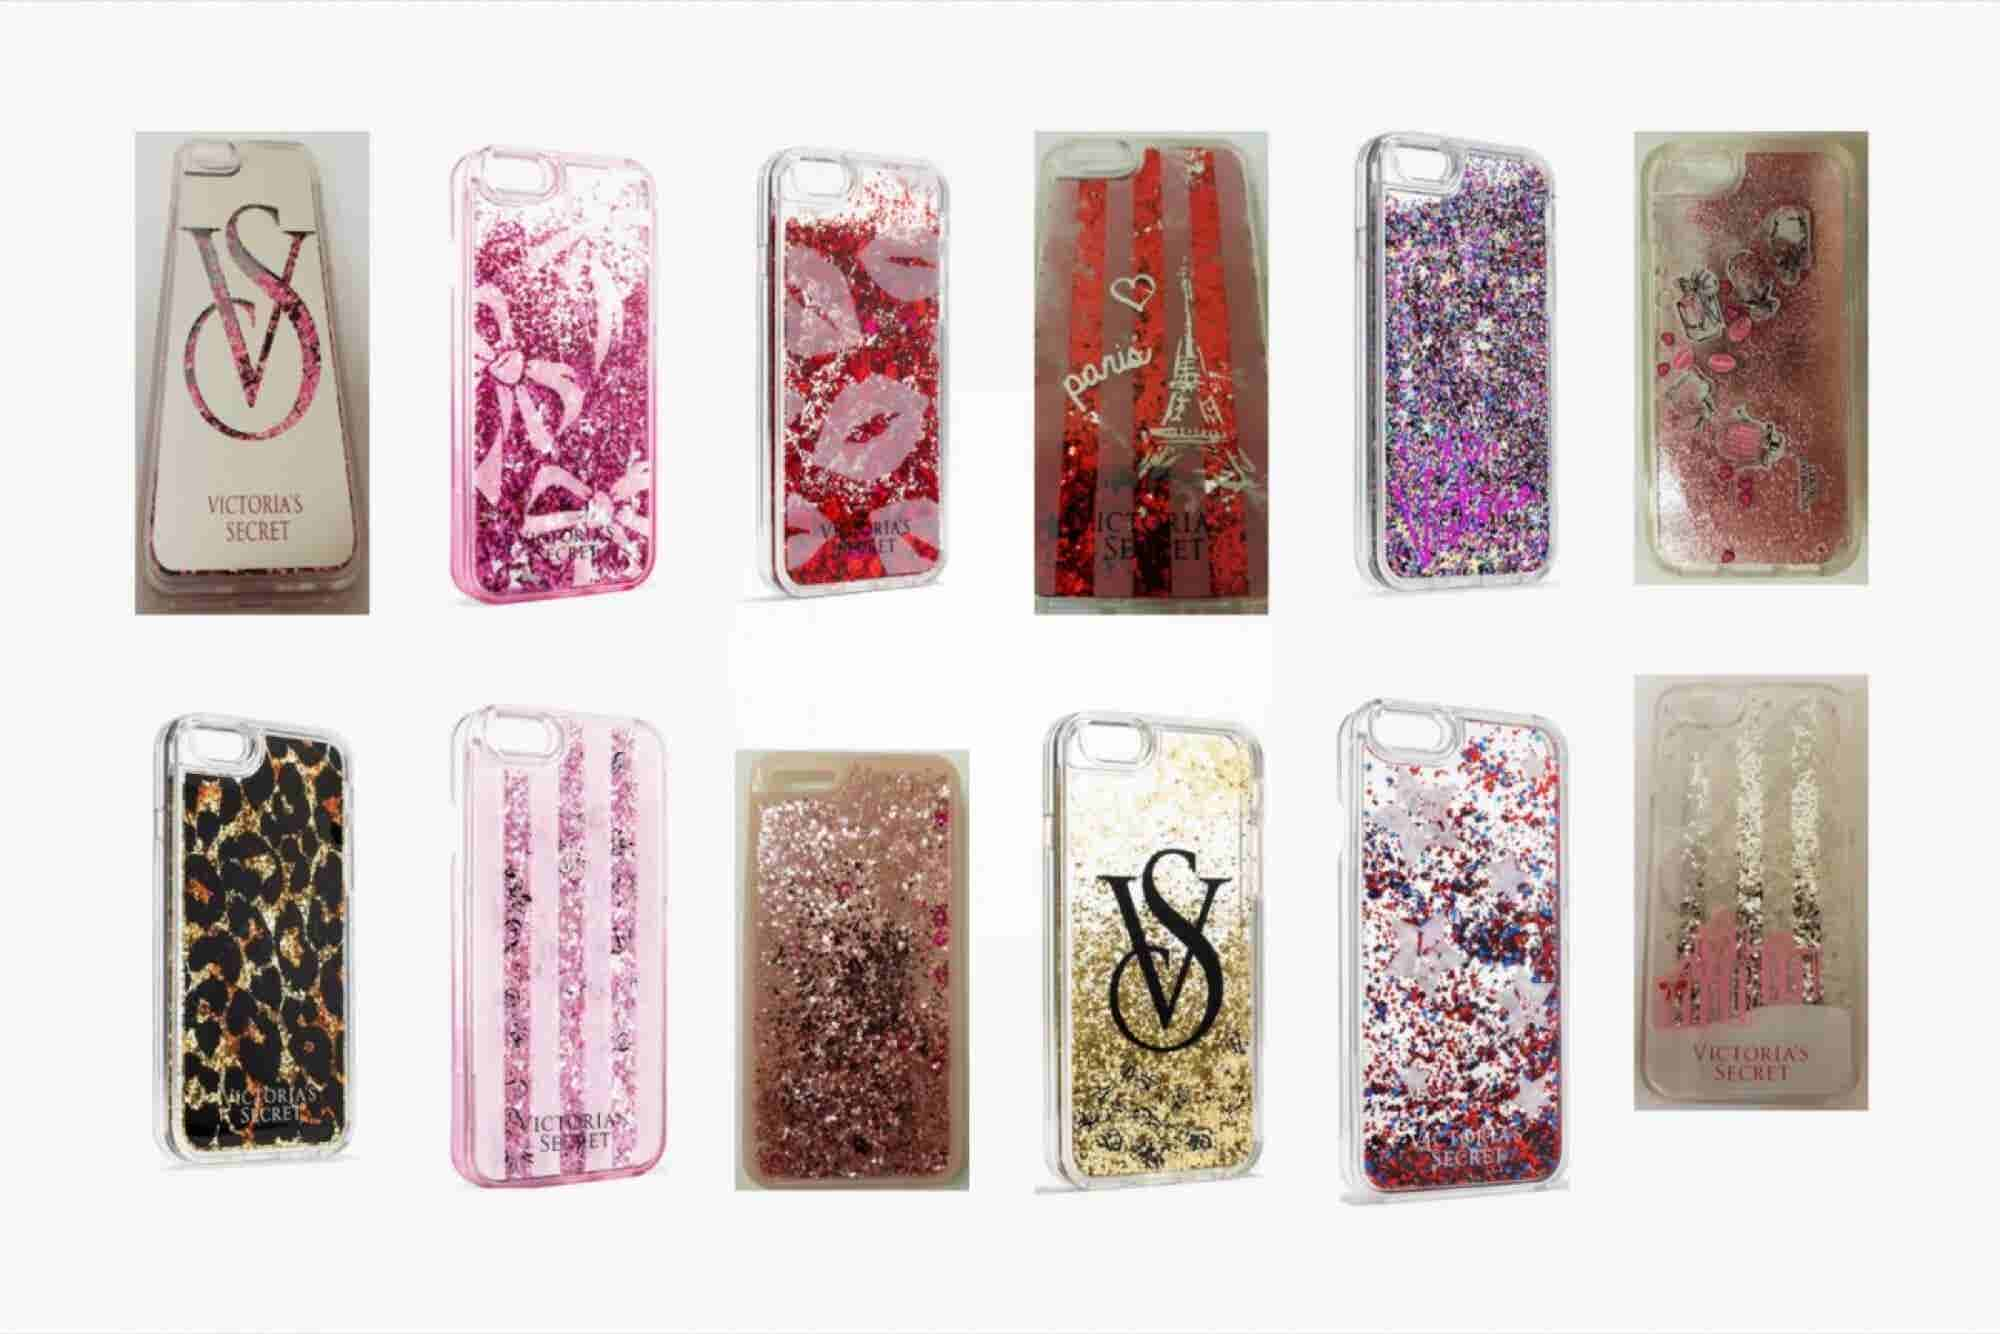 iPhone Glitter Cases Recalled Due to Chemical Burn Risk